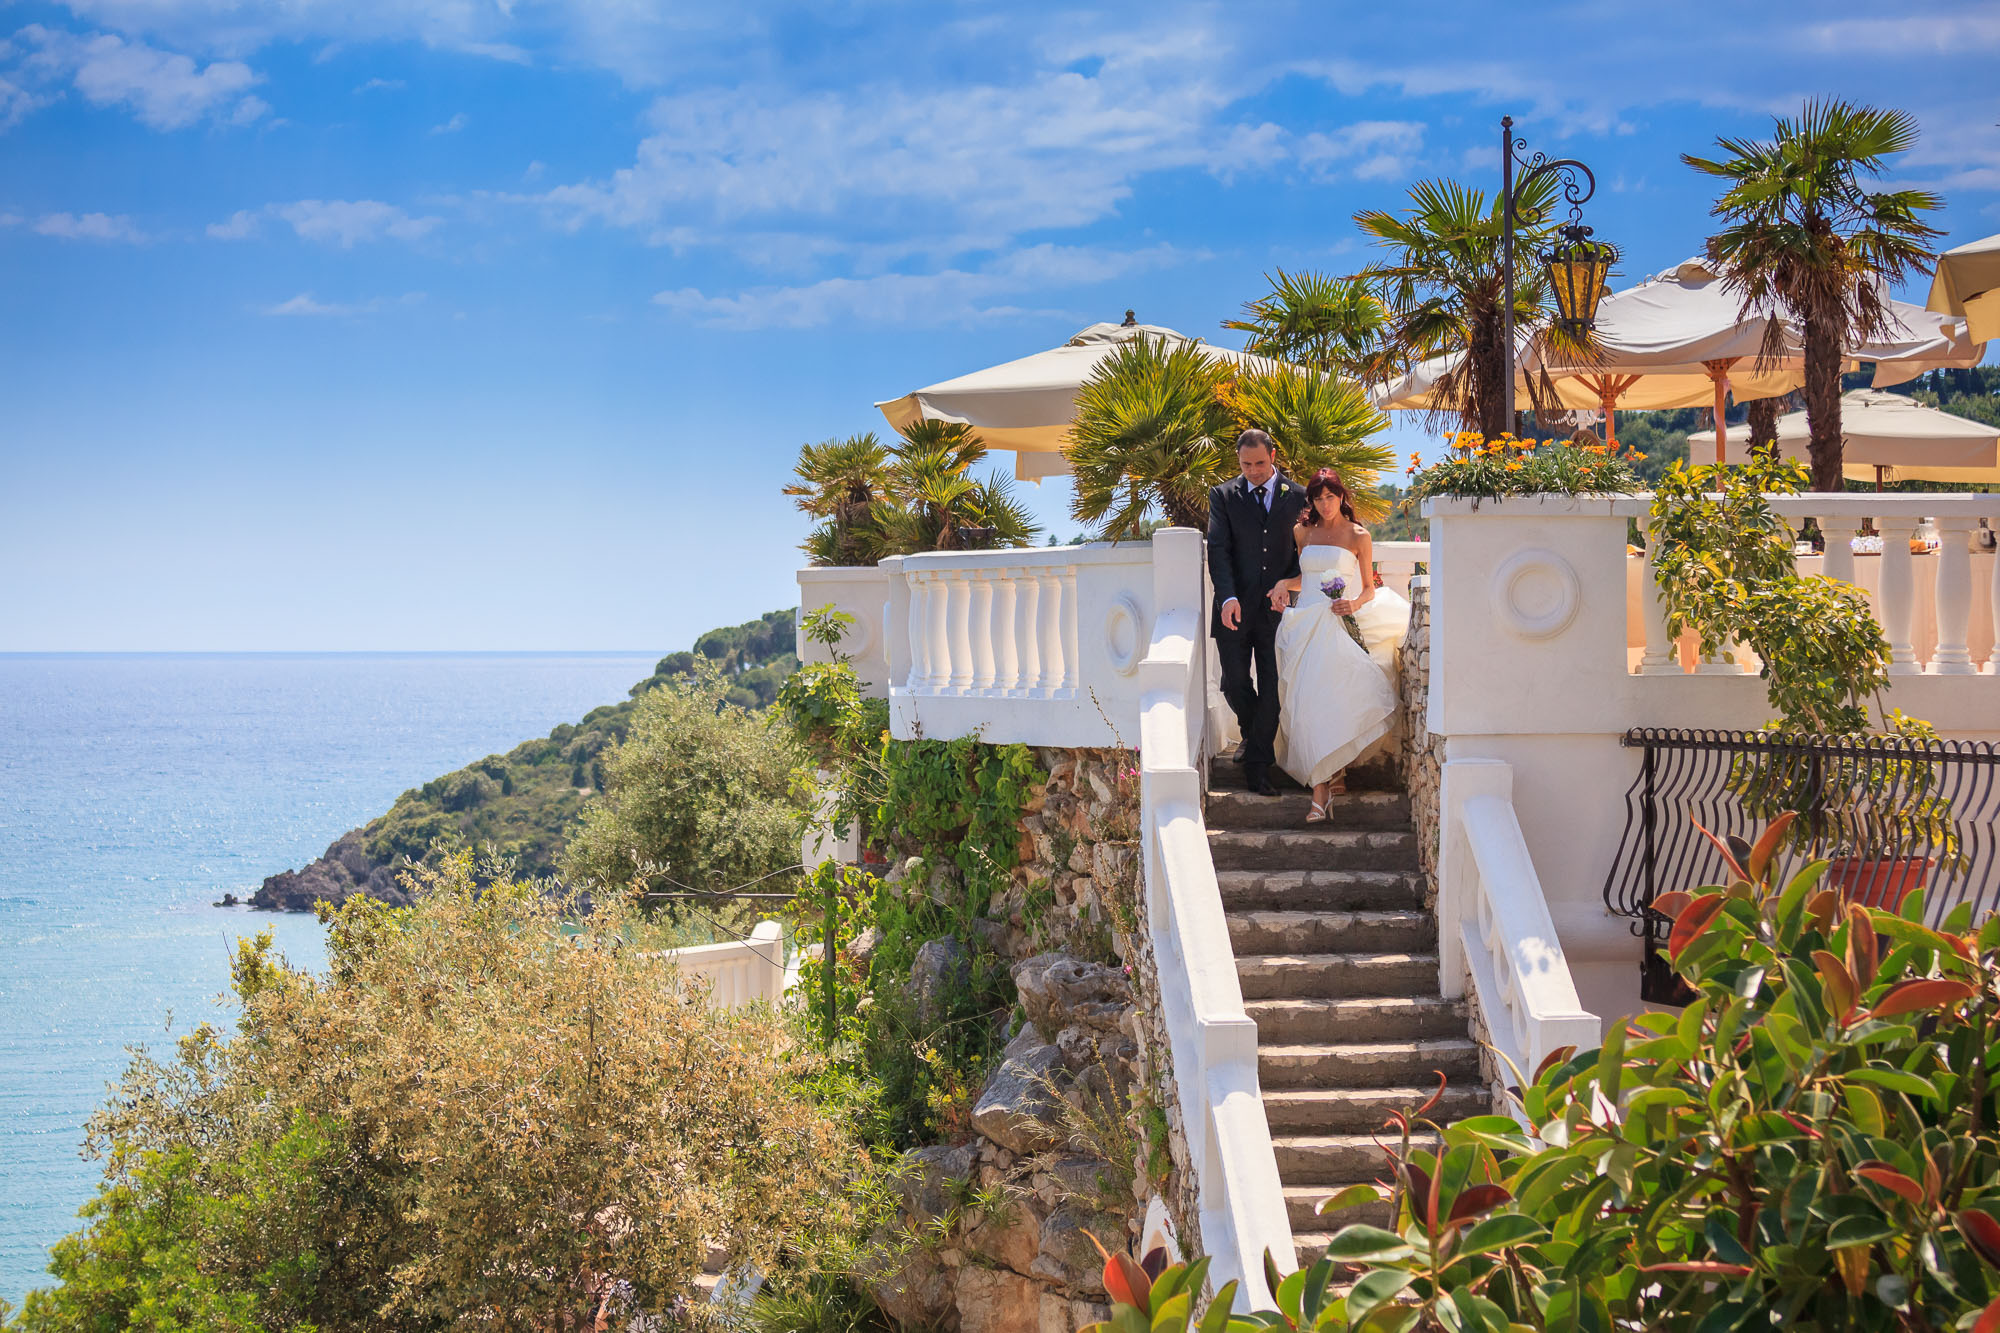 Grand Hotel Le Rocce 4 Stars Resort In Gaeta